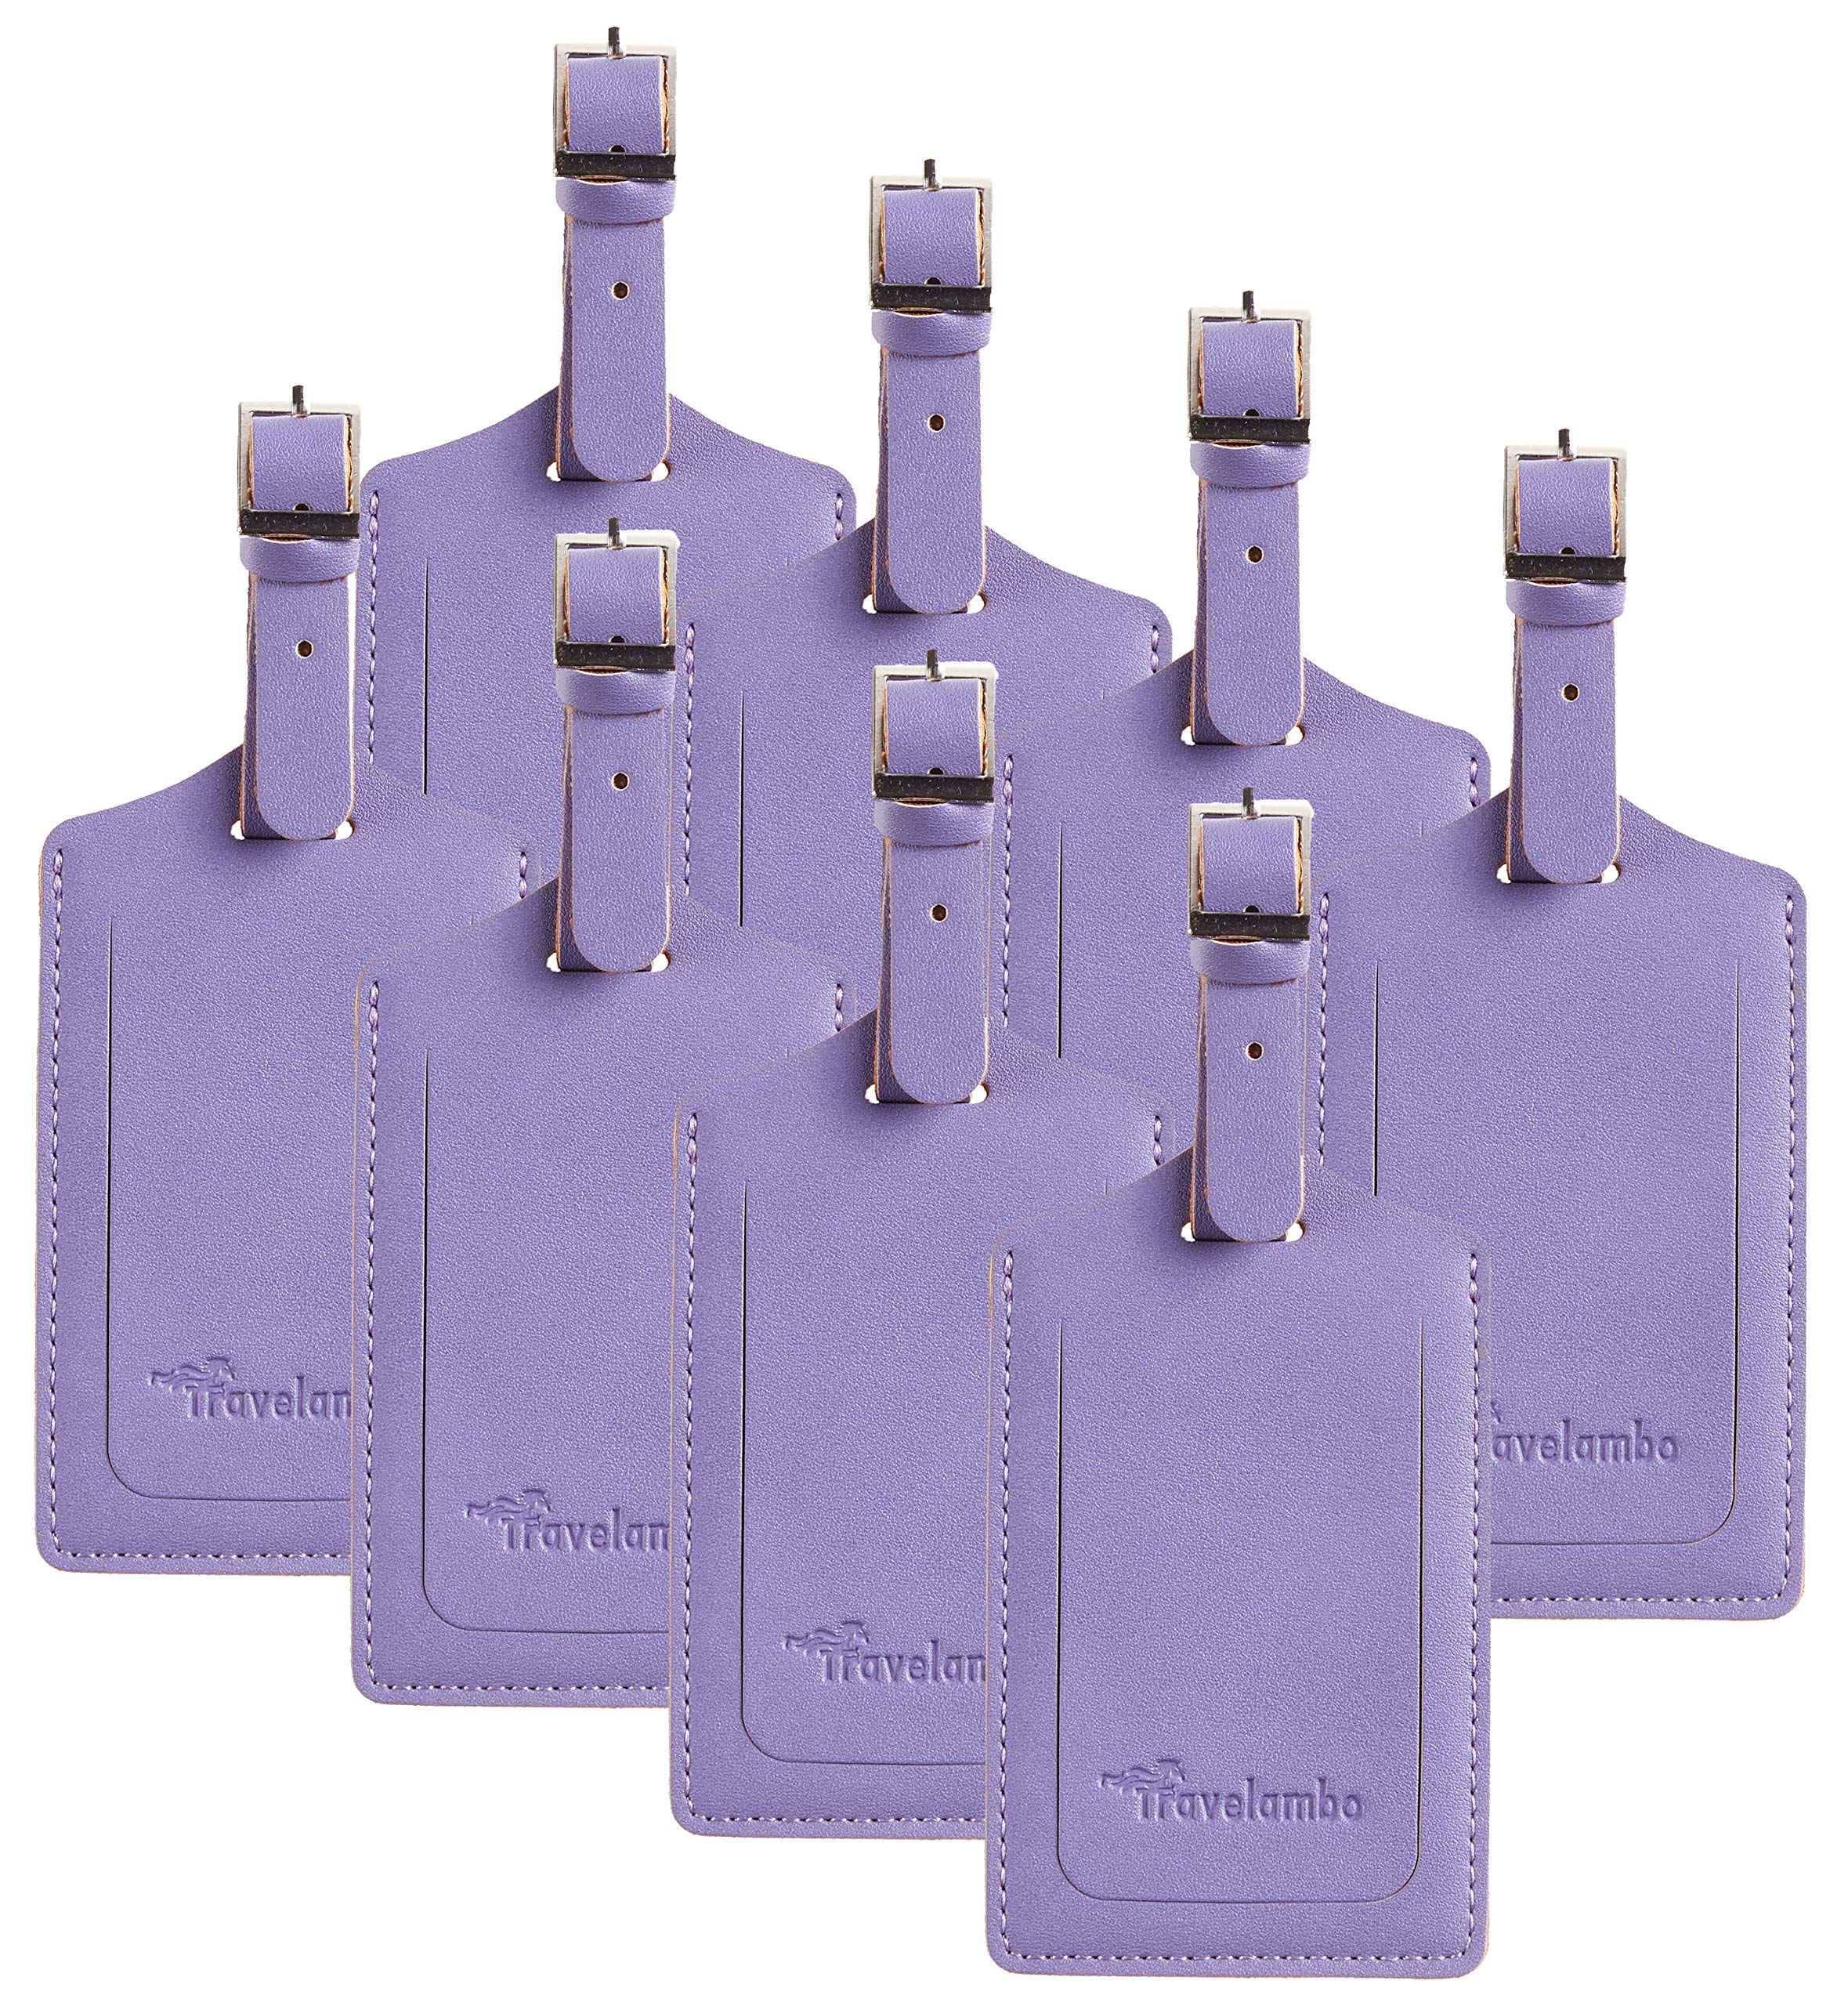 8 Pack Leather Luggage Travel Bag Tags by Travelambo Purple